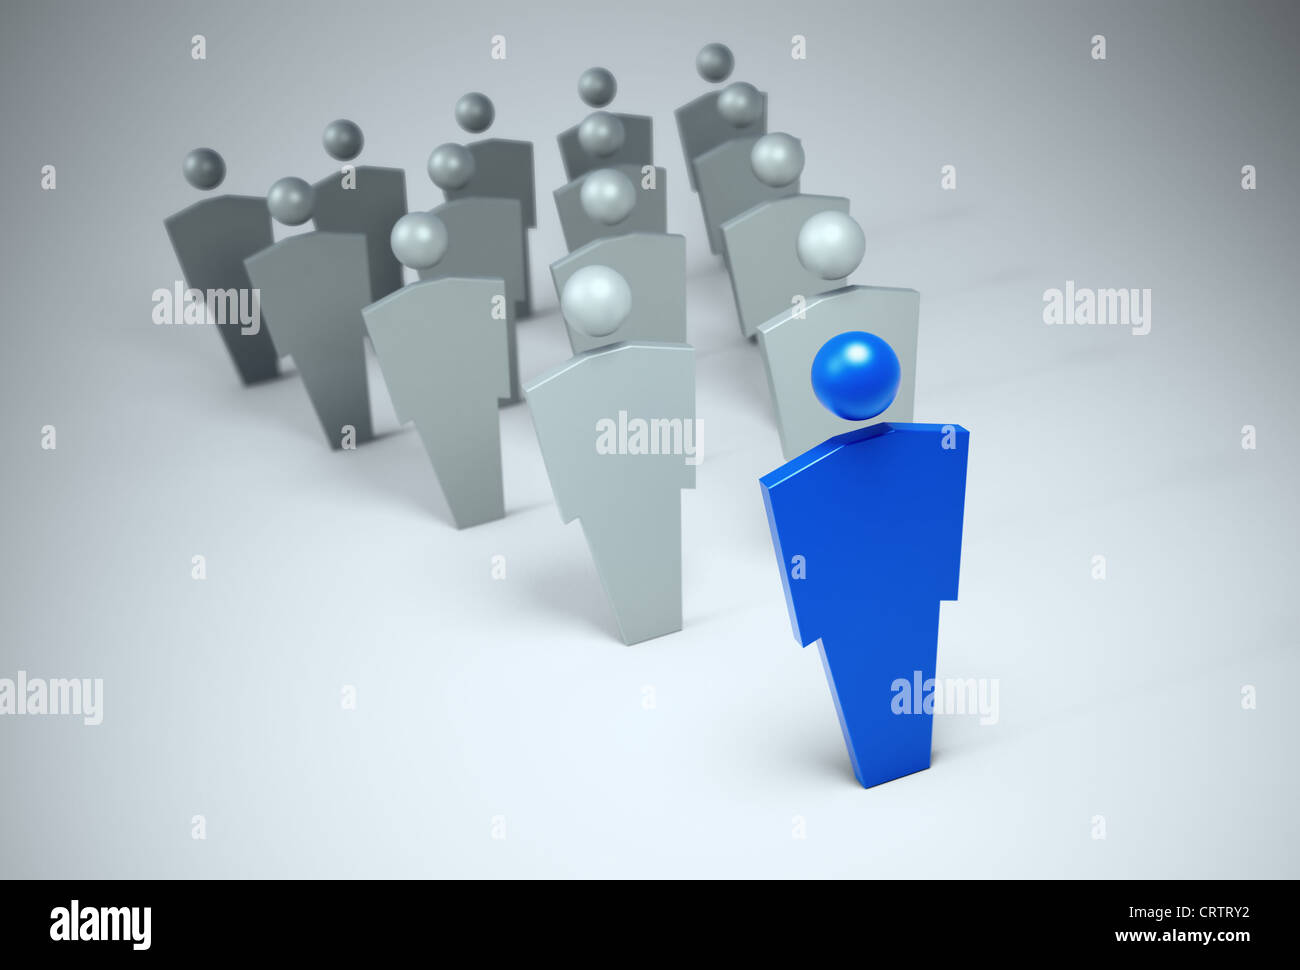 3D characters - leader concept illustration - Stock Image